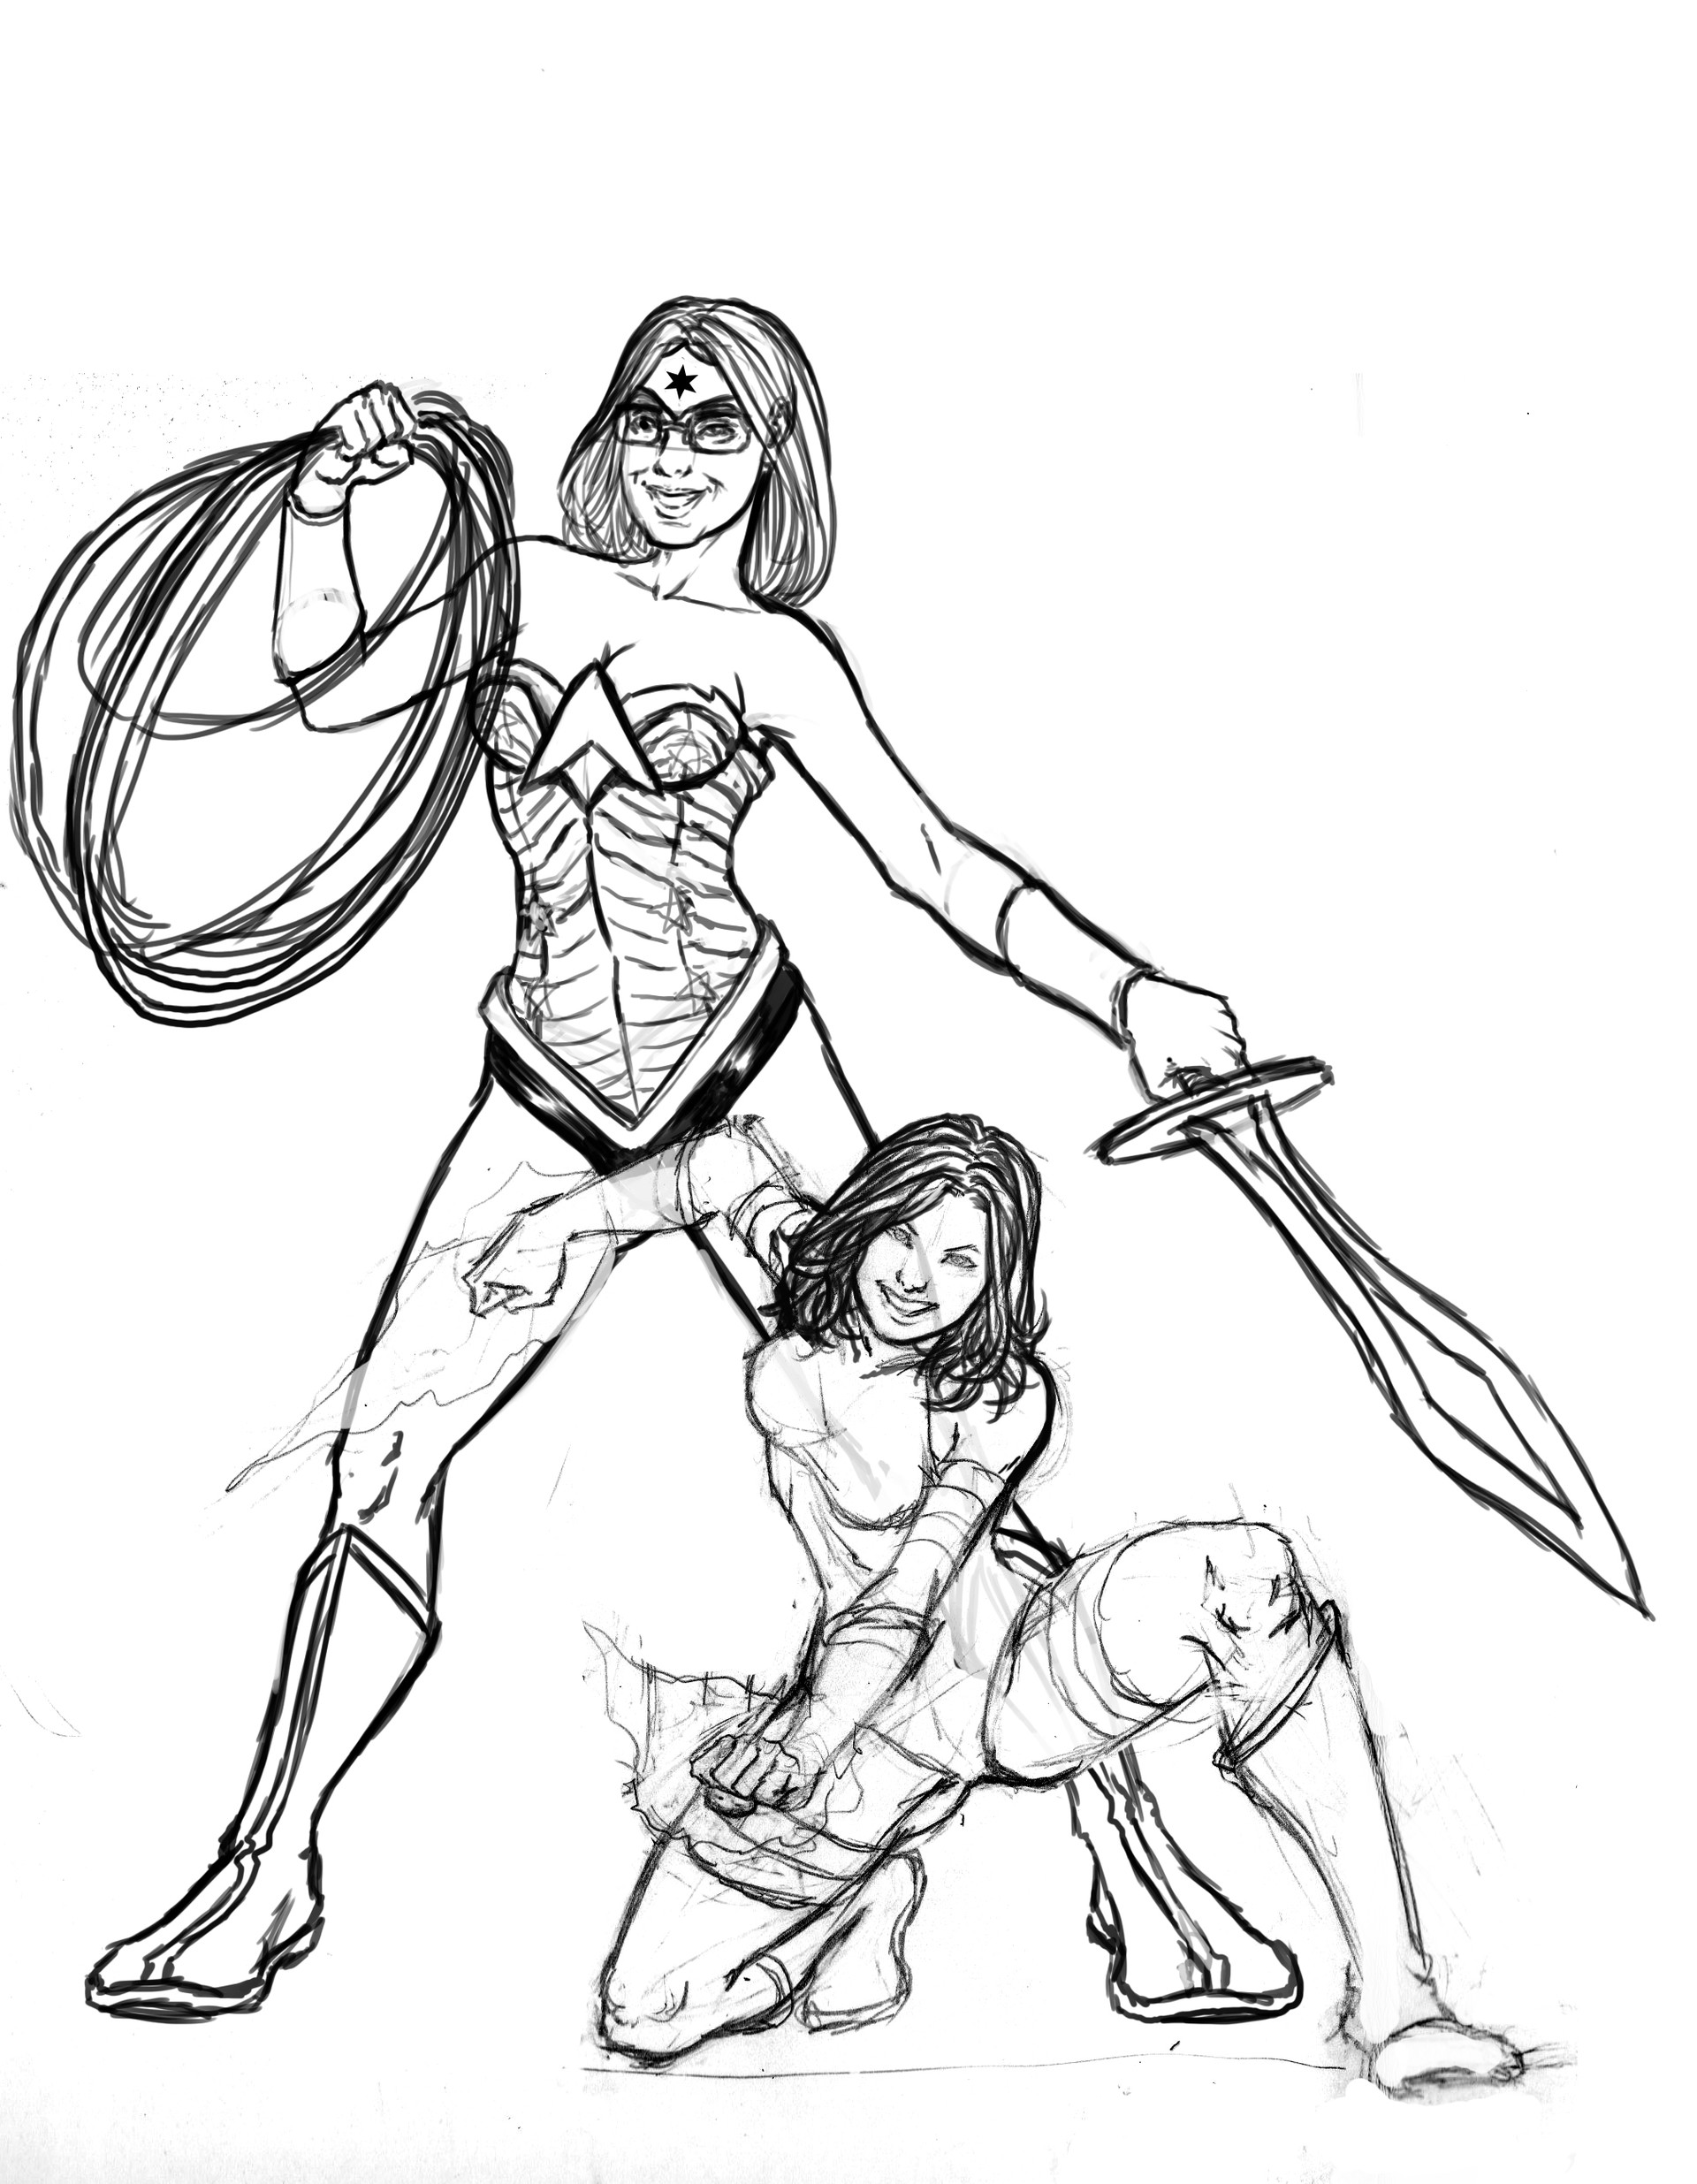 Gustavo melo wonder woman and psylocke